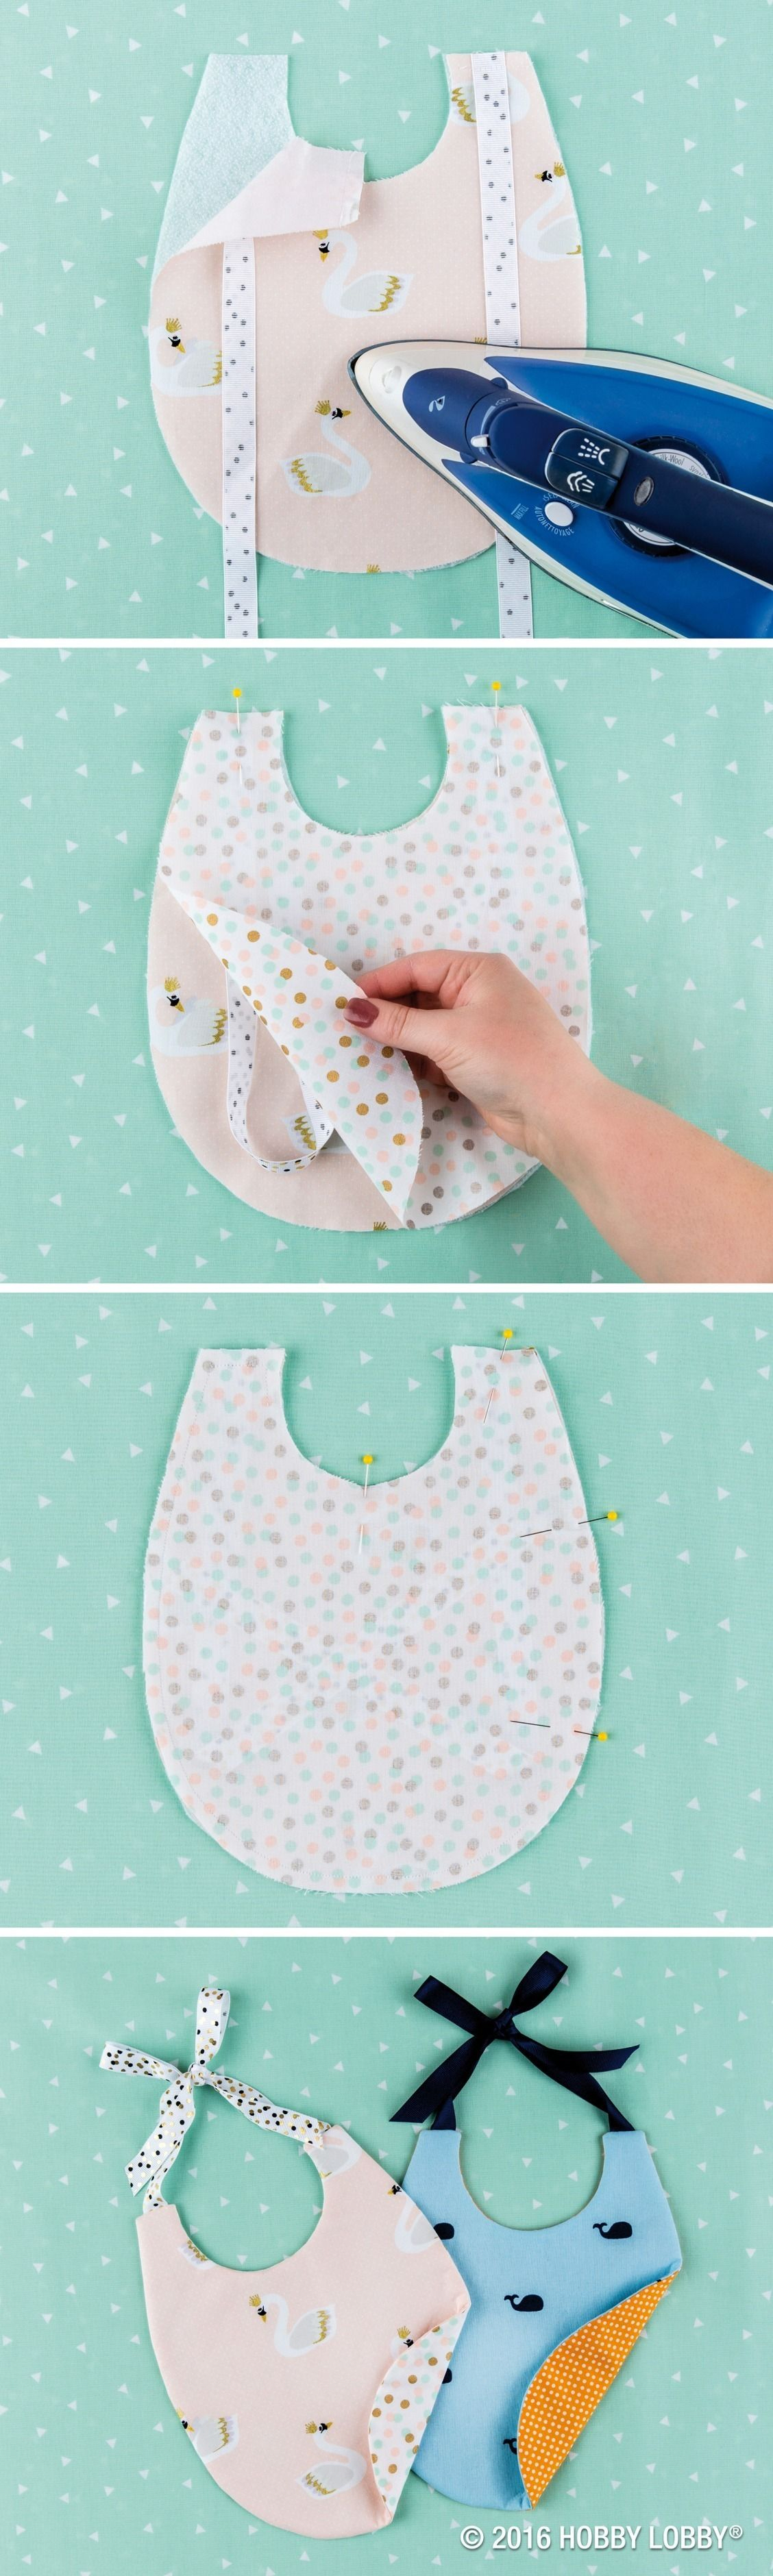 """Keep your little one in style with DIY bibs! 1) Cut 2 pieces of coordinating fabric & 1 piece of fusible fleece. 2) Sew 15"""" of ribbon on each shoulder, & iron on fusible fleece to main fabric's wrong side, & align the main & second fabrics' right sides. 4) Sew 1/4"""" from edge all the way around bib, leaving a 1 1/2"""" opening. 4) Trim corners & make small cuts around bib. Do not clip the sew line. 5) Turn bib inside out, press & hand sew the open space to finish. Refer to Simplicity pattern…"""